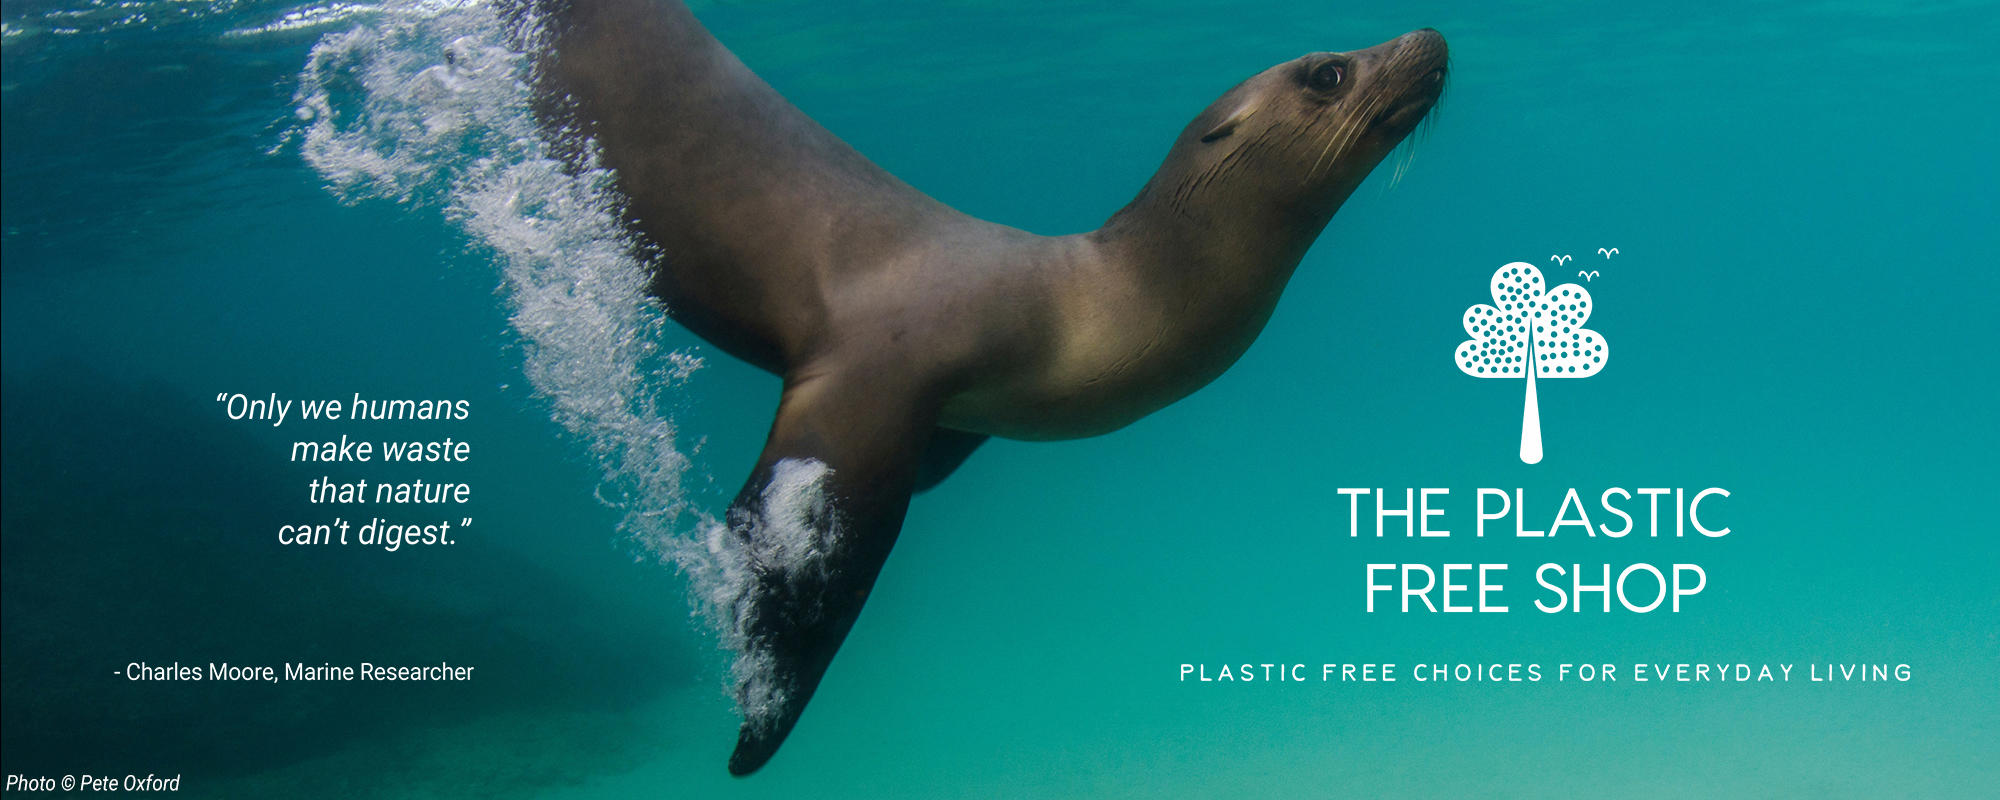 The Plastic Free Shop: Plastic free choices for everyday living